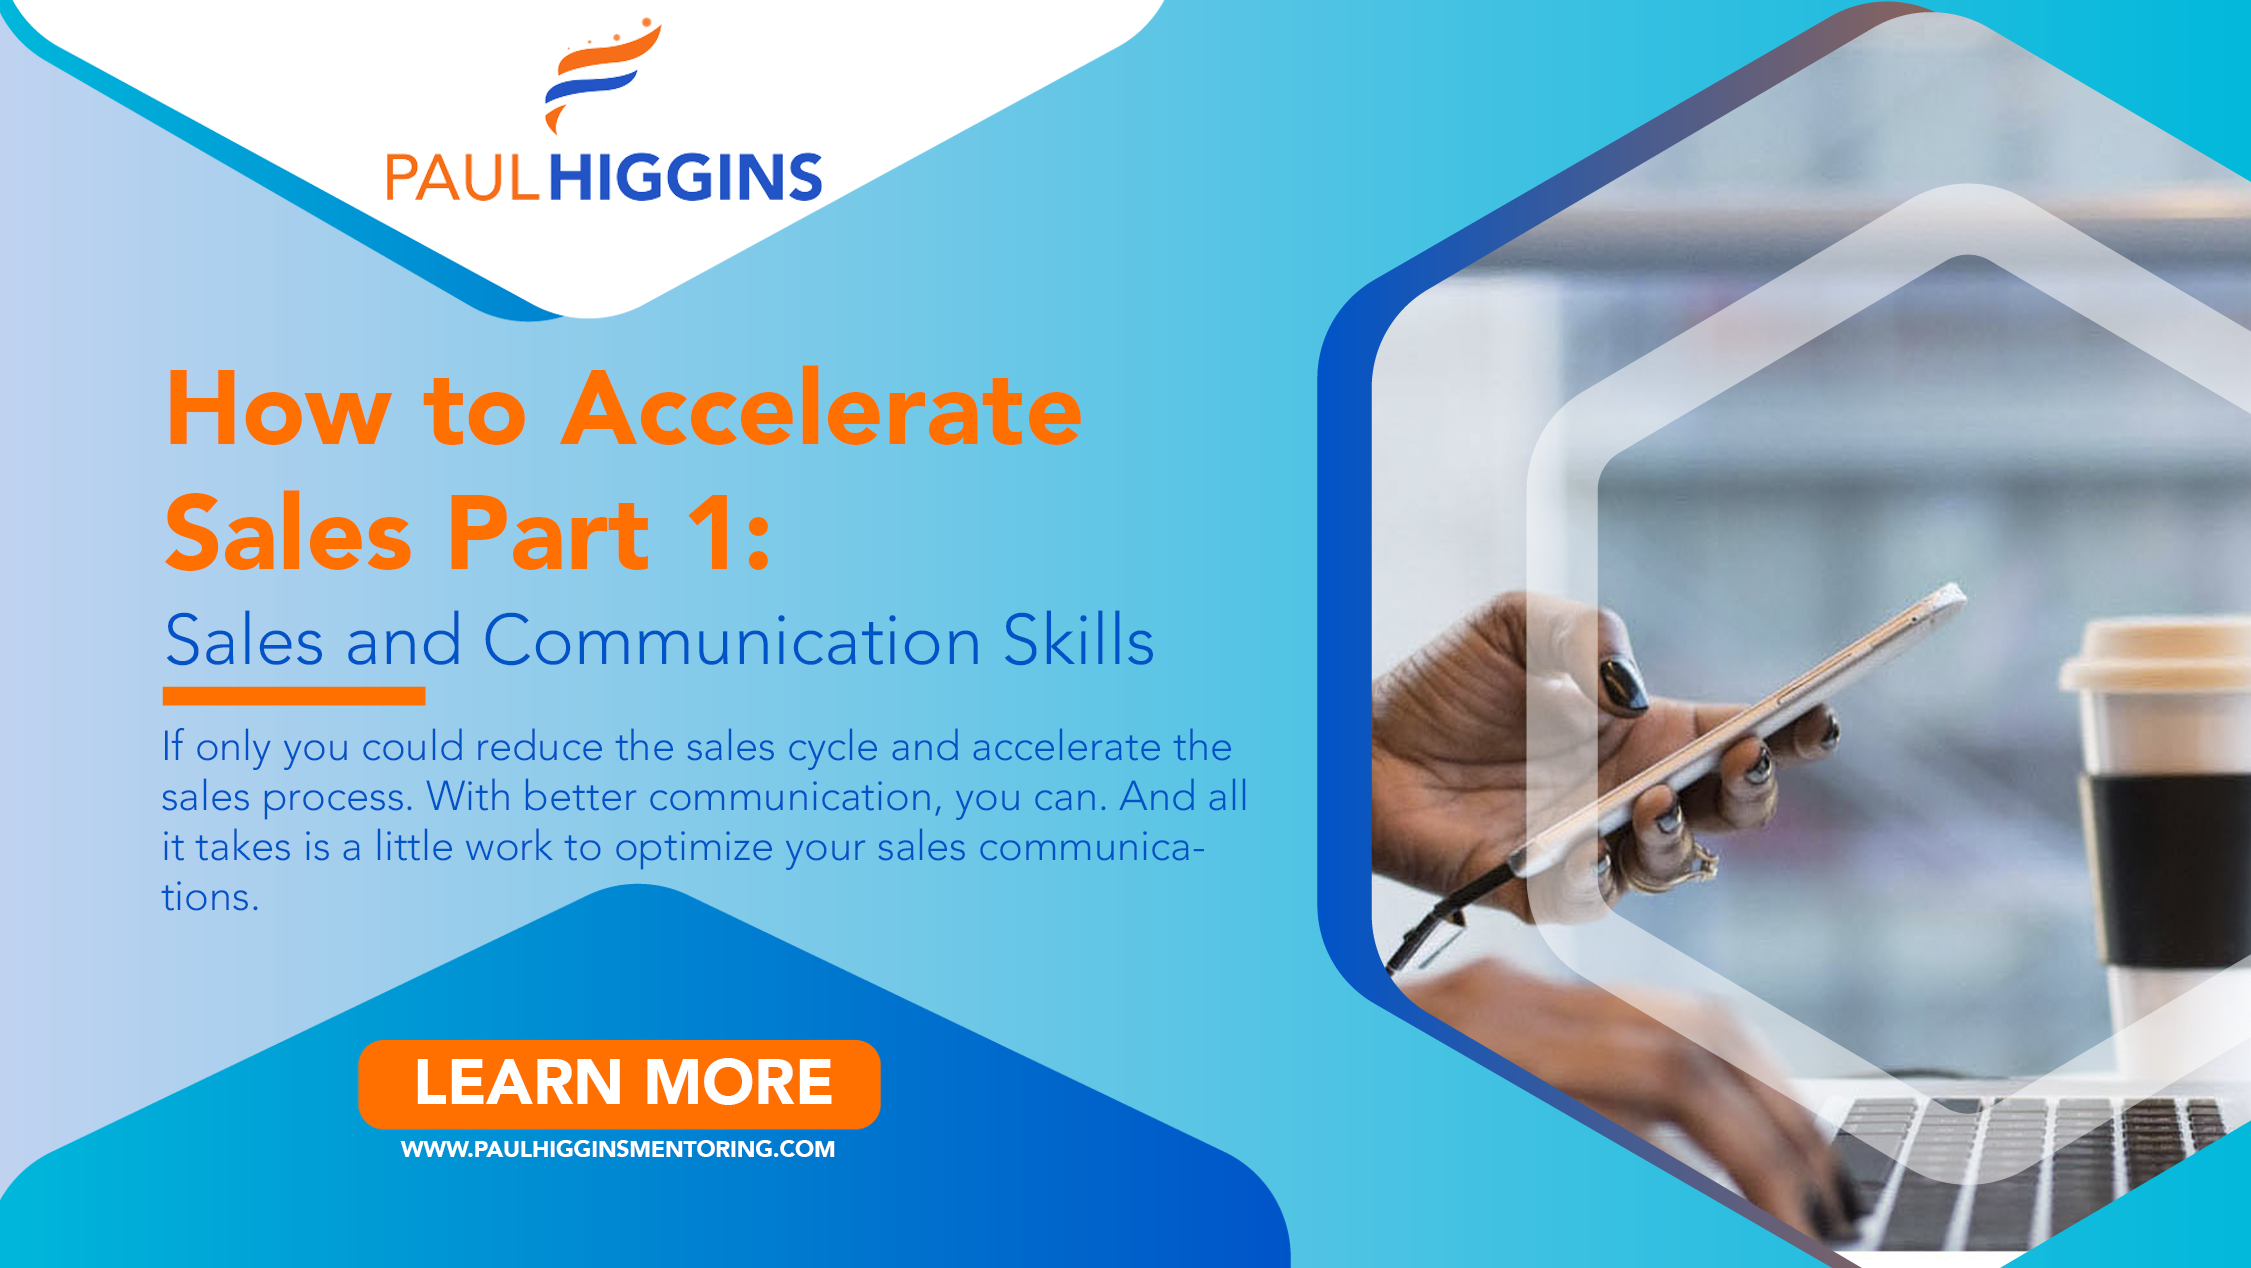 Do you want to know how to accelerate sales? You need to boost your sales and communication skills. Hard work? Not if you follow this one tip.